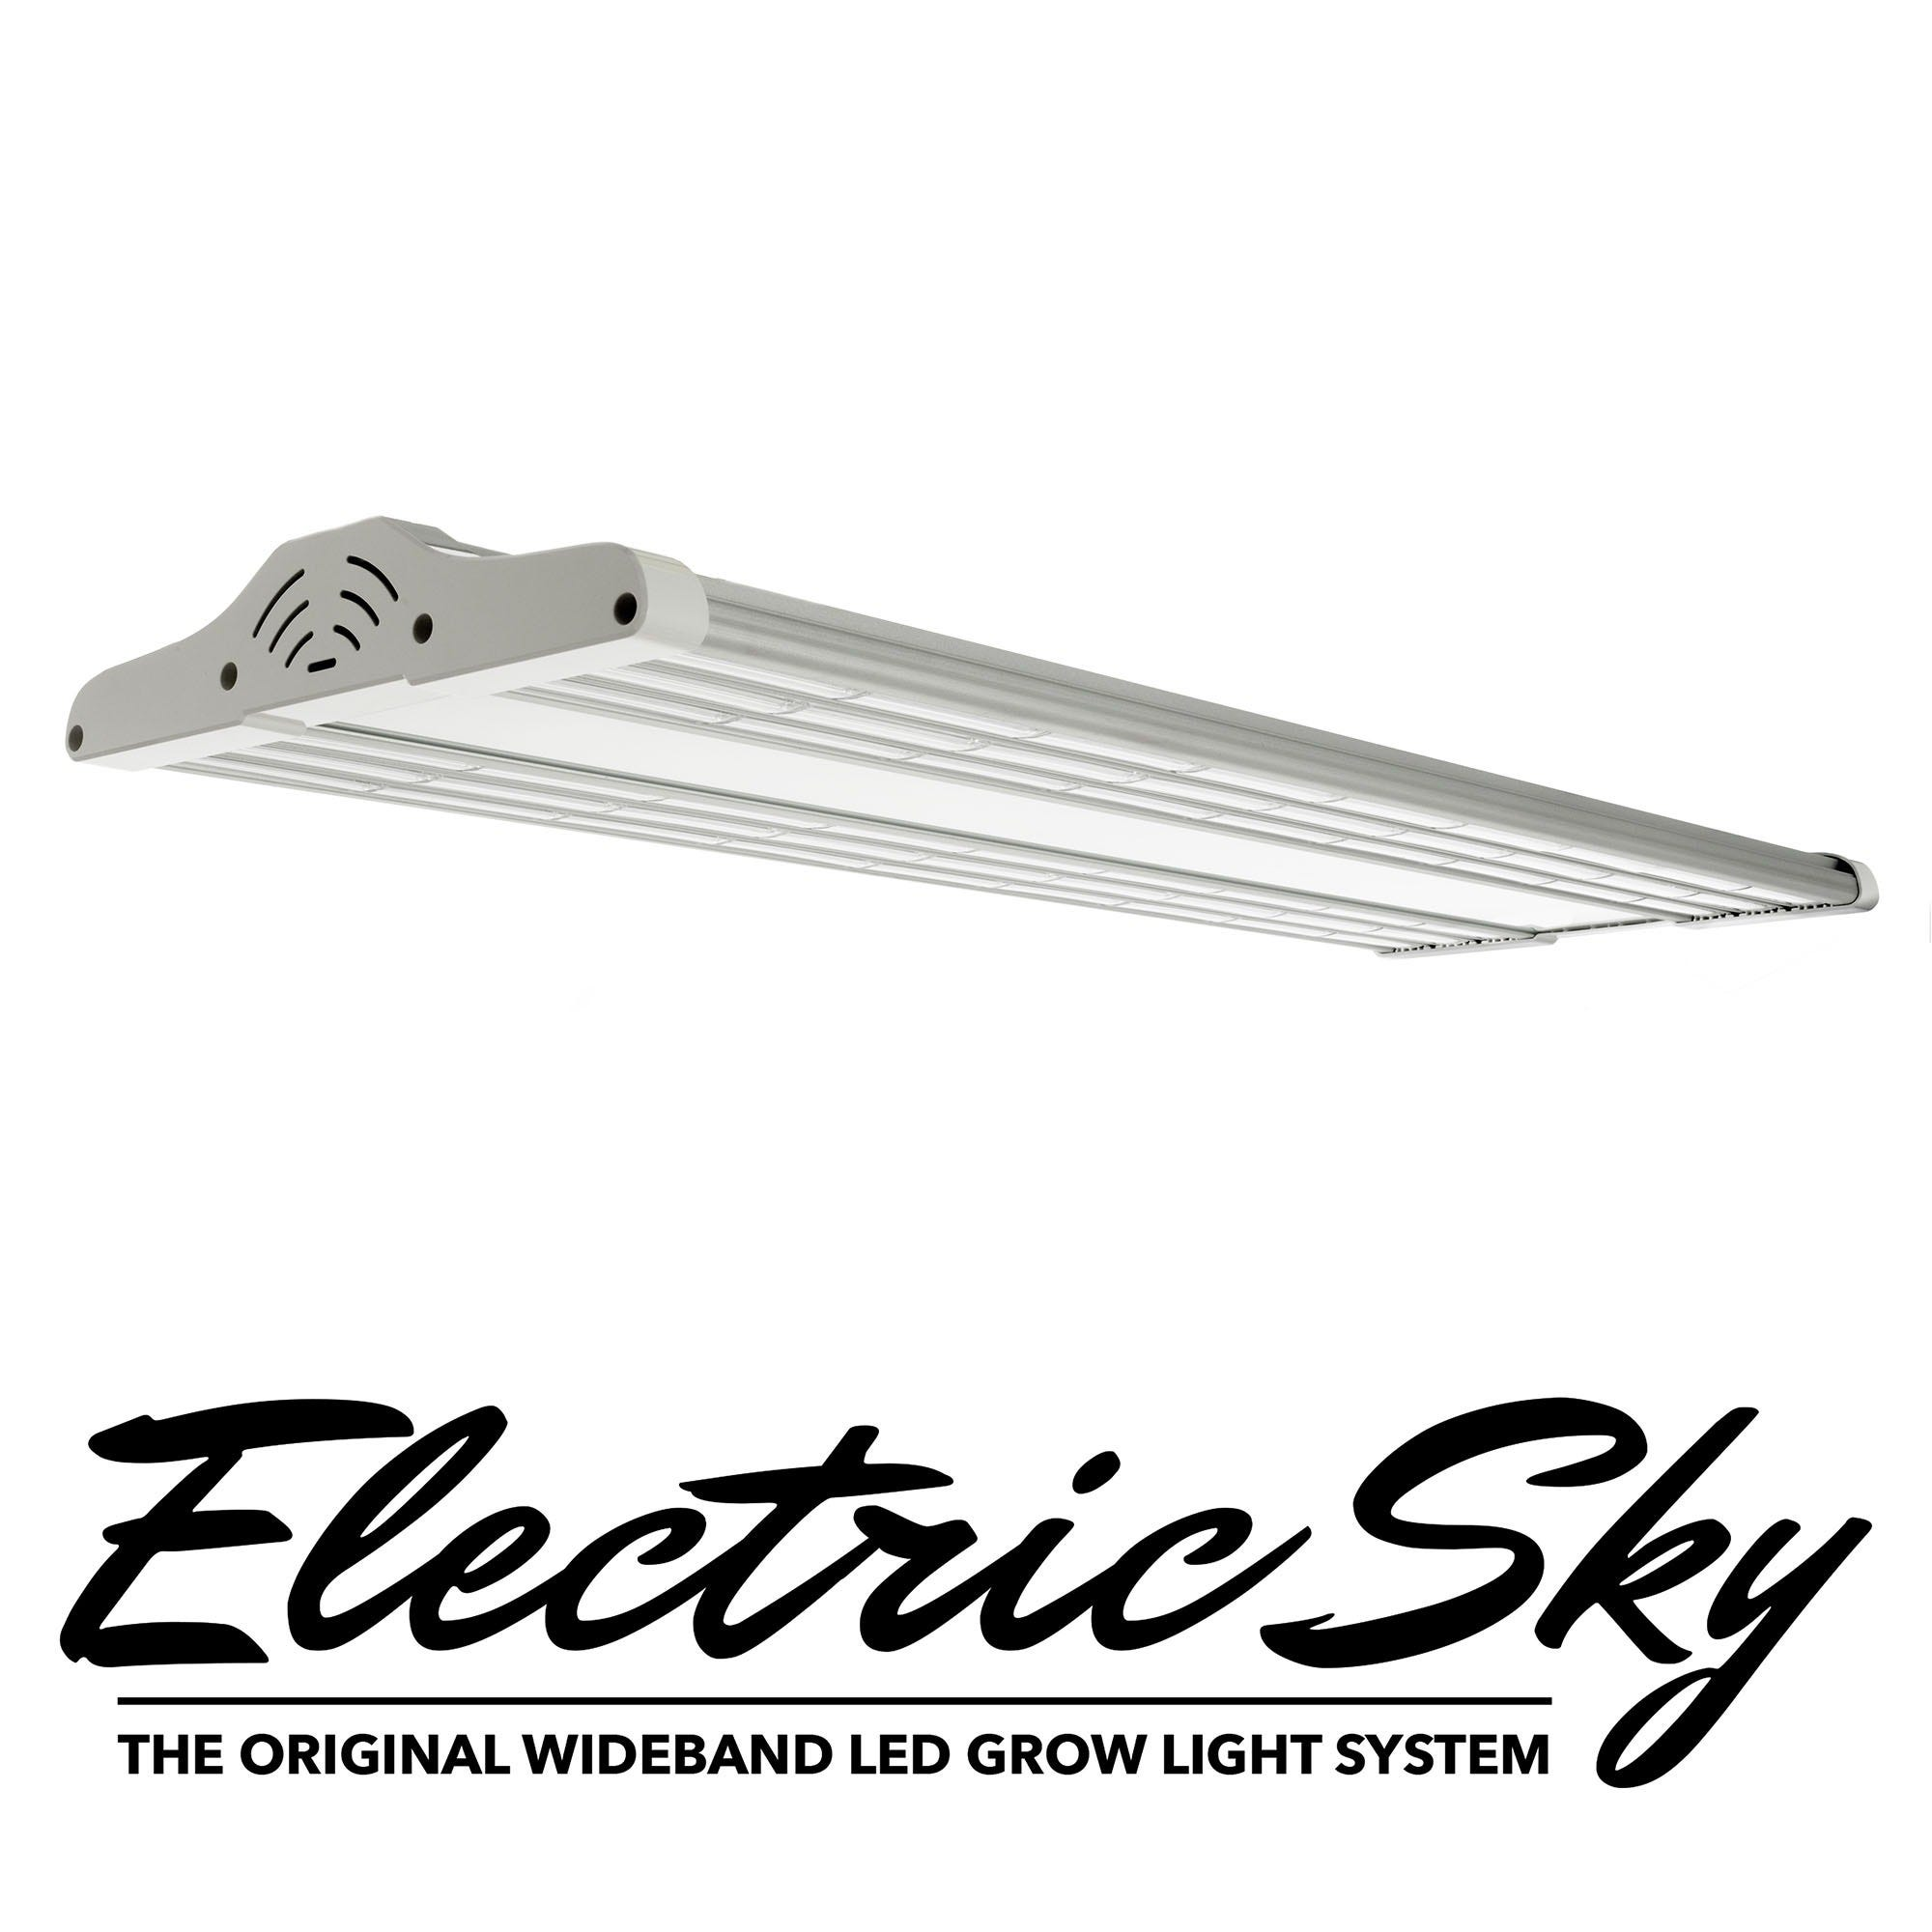 """Electric Sky ES300 LED Grow Light ELECTRIC Sky 300 (ES300) the Original Wide-Band LED Grow Light System If you're a professional producer who expects uncompromising quality in results and you demand the ultimate way to boost your yields in weight, potency and Terpenes quality with a BLAZING FAST growing/flowering time, then the Electric Sky 300 is the SECRET WEAPON that can make it happen. No other grow light in the industry can match the Electric Sky in growing and flowering power. Grower-Proven Results Flowers Up To 2.5'x5′ (Grow Tent) 2x ES300 Replace 1000W HPS In Stock – Discrete Shipping Worldwide 90 Day Money Back Guarantee 3 Year Warranty Ships from USA – Portland, OR ETL Listed for Quality & Safety The patent-pending GS1 Wideband Spectrum technology not only replicates the exact power of the Sun's wavelengths that plants thrive in, the ES300 gives your plants even more of what they're looking for. It's like putting your entire crop on steroids! The Electric Sky 300 saturates your plant's HIDDEN GROWTH CENTERS with a unique, scientifically proven recipe combination of growing and flowering light wavelength nutrients your plants understand. The ES300 unleashes any plant strain's true optimum potential, delivering explosive yield results up to one to two weeks faster… you'll see your profits soar because you'll require a fraction of the electrical power, nutrient, and water costs then with any other LED light system you've tried before. GS1 WIDEBAND SPECTRUM TECHNOLOGY lets your plants """"see"""" and soak in what traditional LEDs can't give them: a scientific nutrient blend through spectral light wavelengths. GIVE YOUR PLANTS THE CORRECT INFORMATION: When plants don't have enough infrared light, they're """"flying blind"""". They can't """"see straight"""" or """"think straight"""". All other LED's prevent plants from making use of all the light they re"""